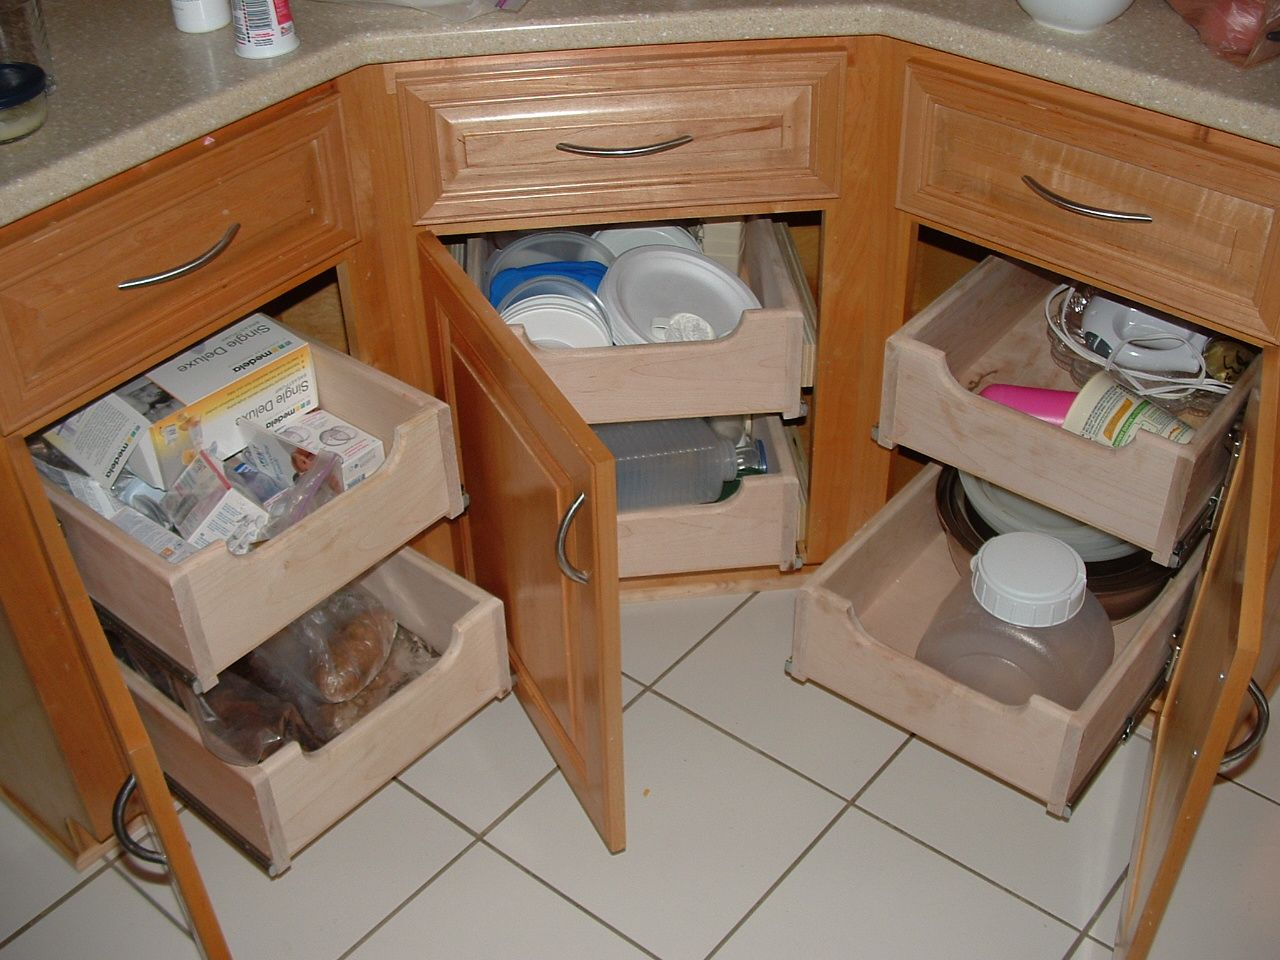 diy pull out shelves for kitchen cabinets | roselawnlutheran